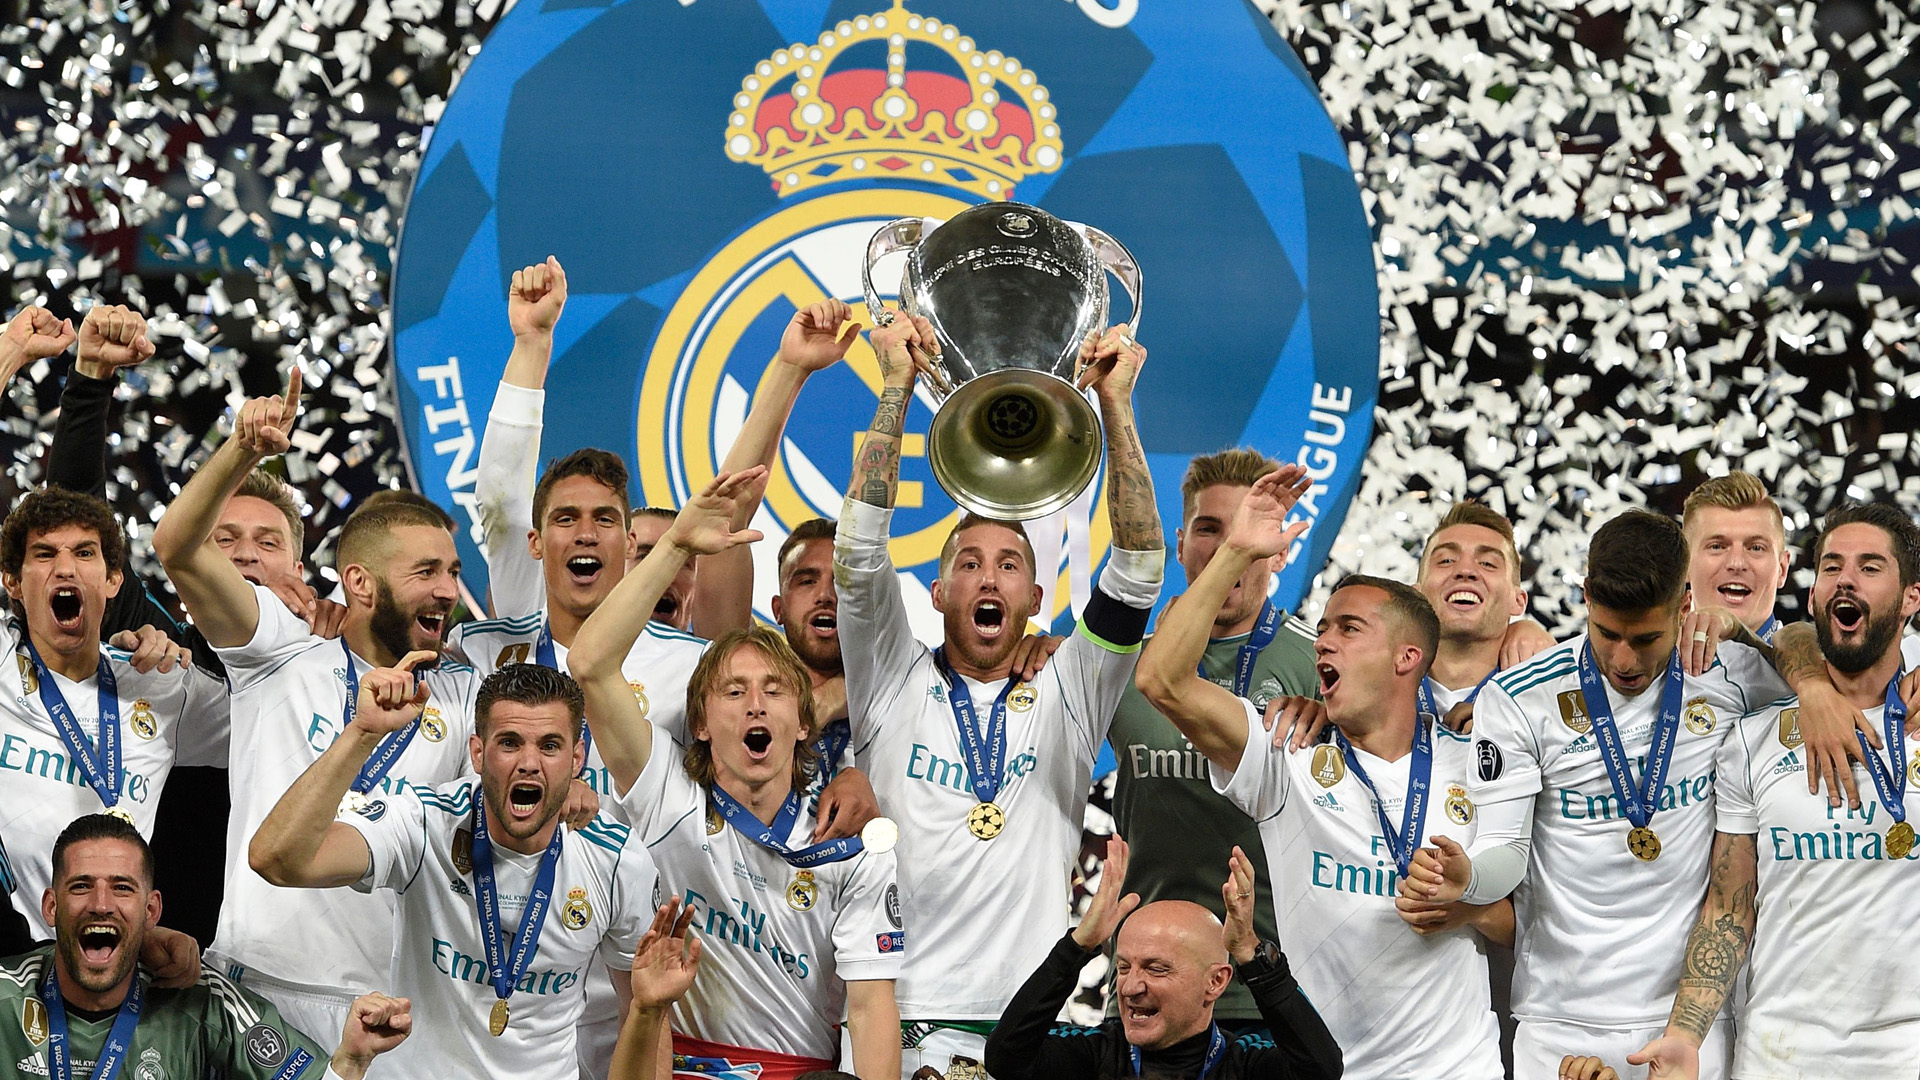 Sensational Gareth Bale goal and two goalkeeping howlers hand Real Madrid title